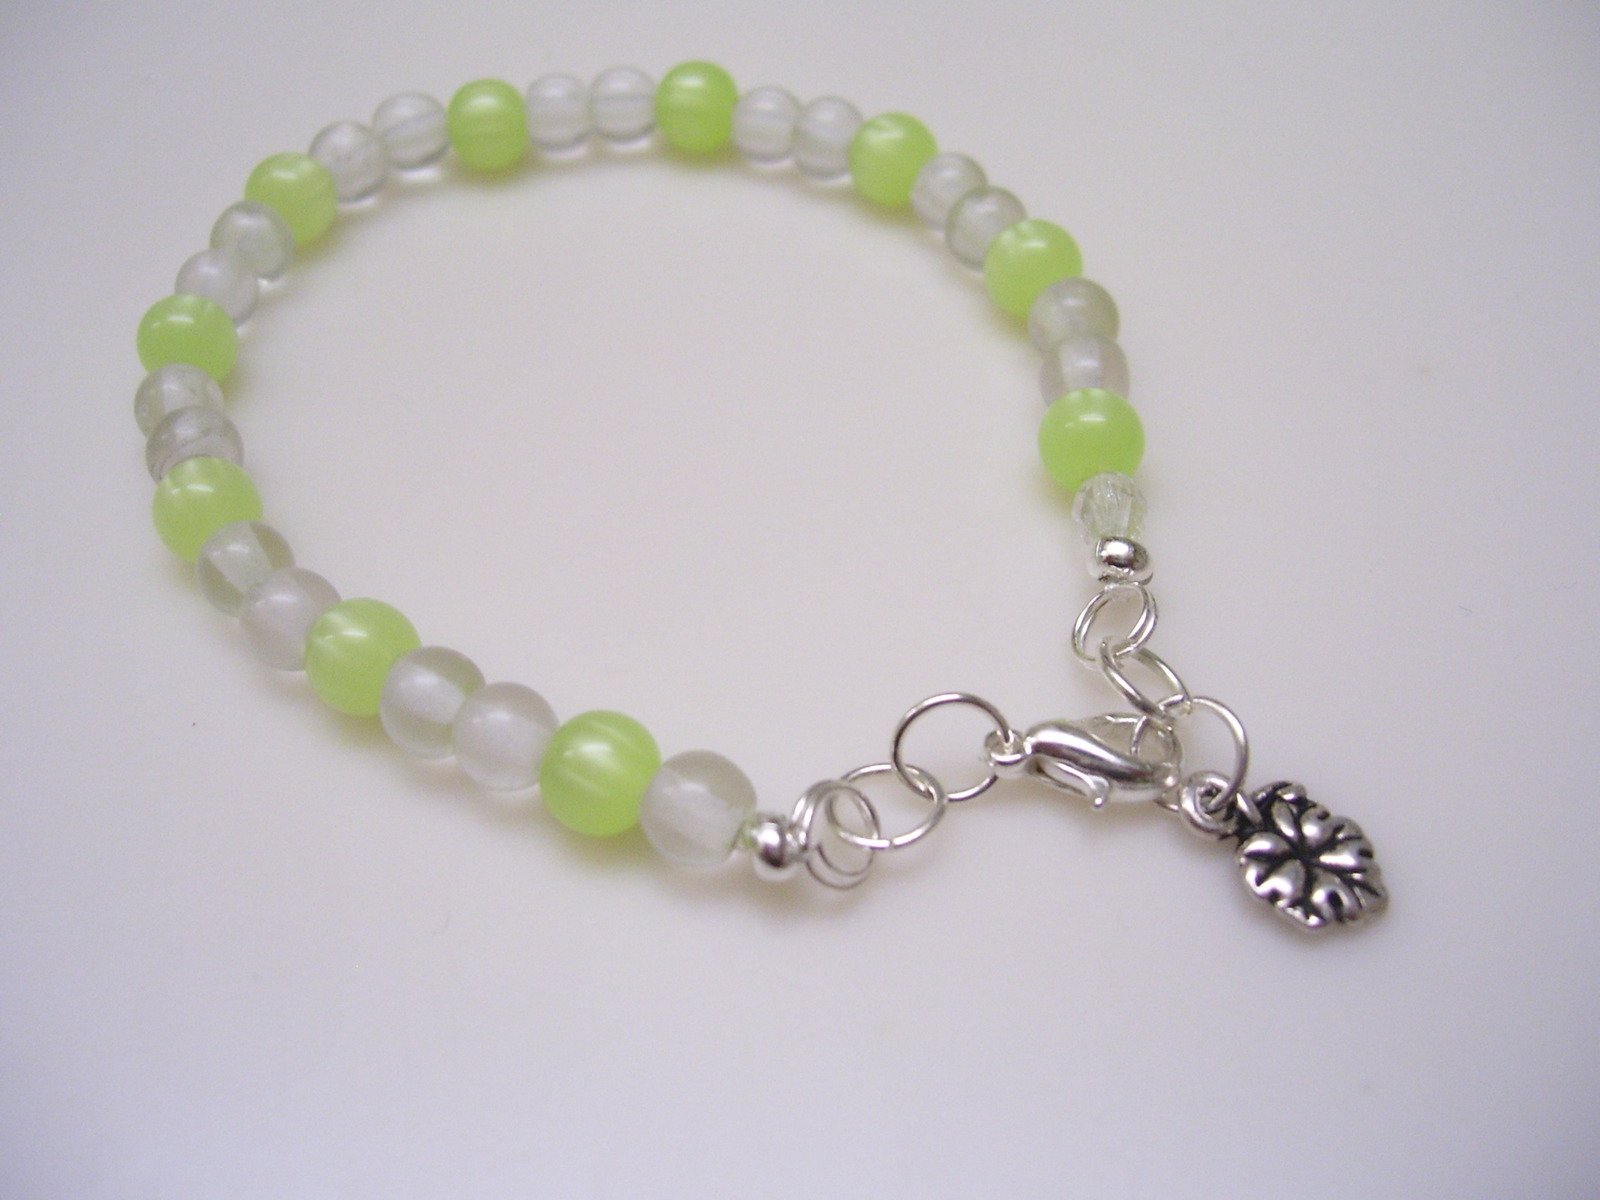 Spring Green Moonglow Beaded Bracelet w/Grape Leaf Charm